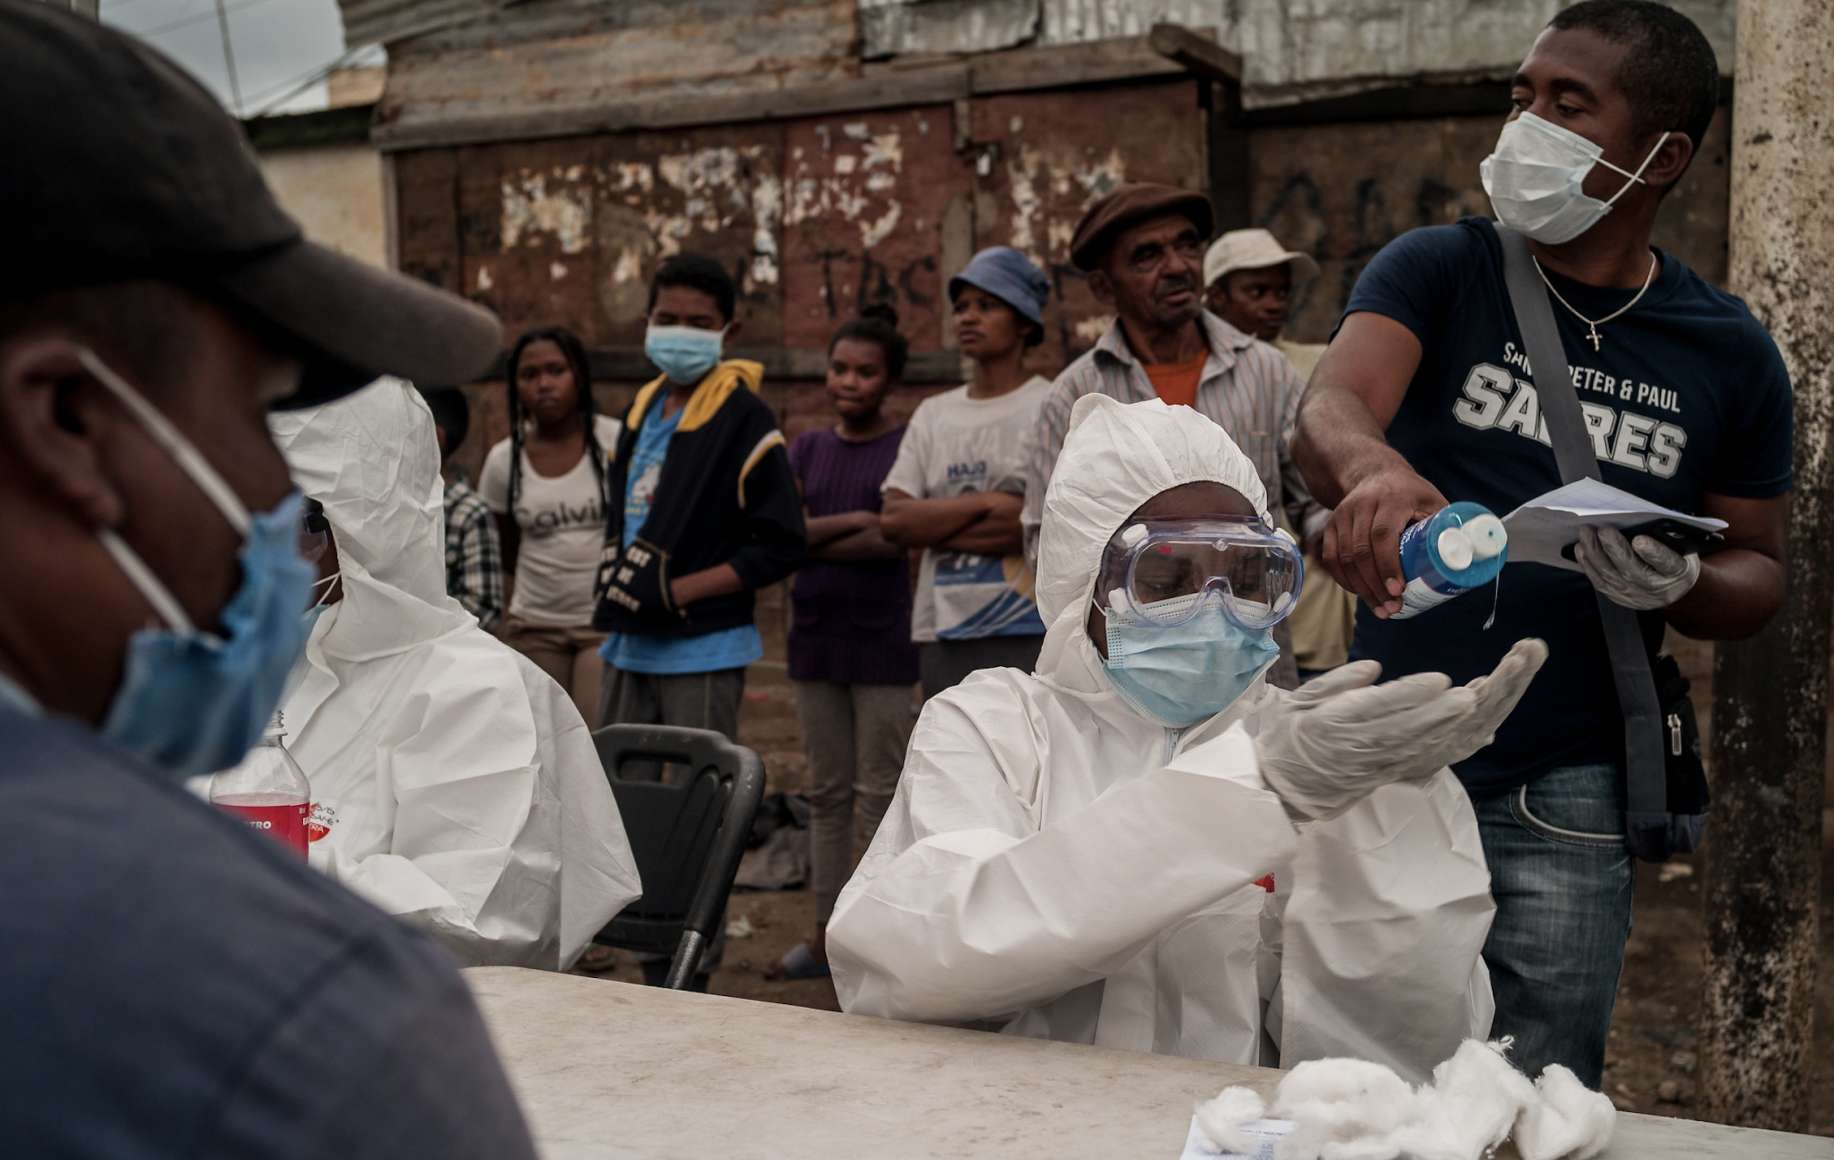 COVID-19 pandemic: threats to SMEs in poorest nations require swift policy action